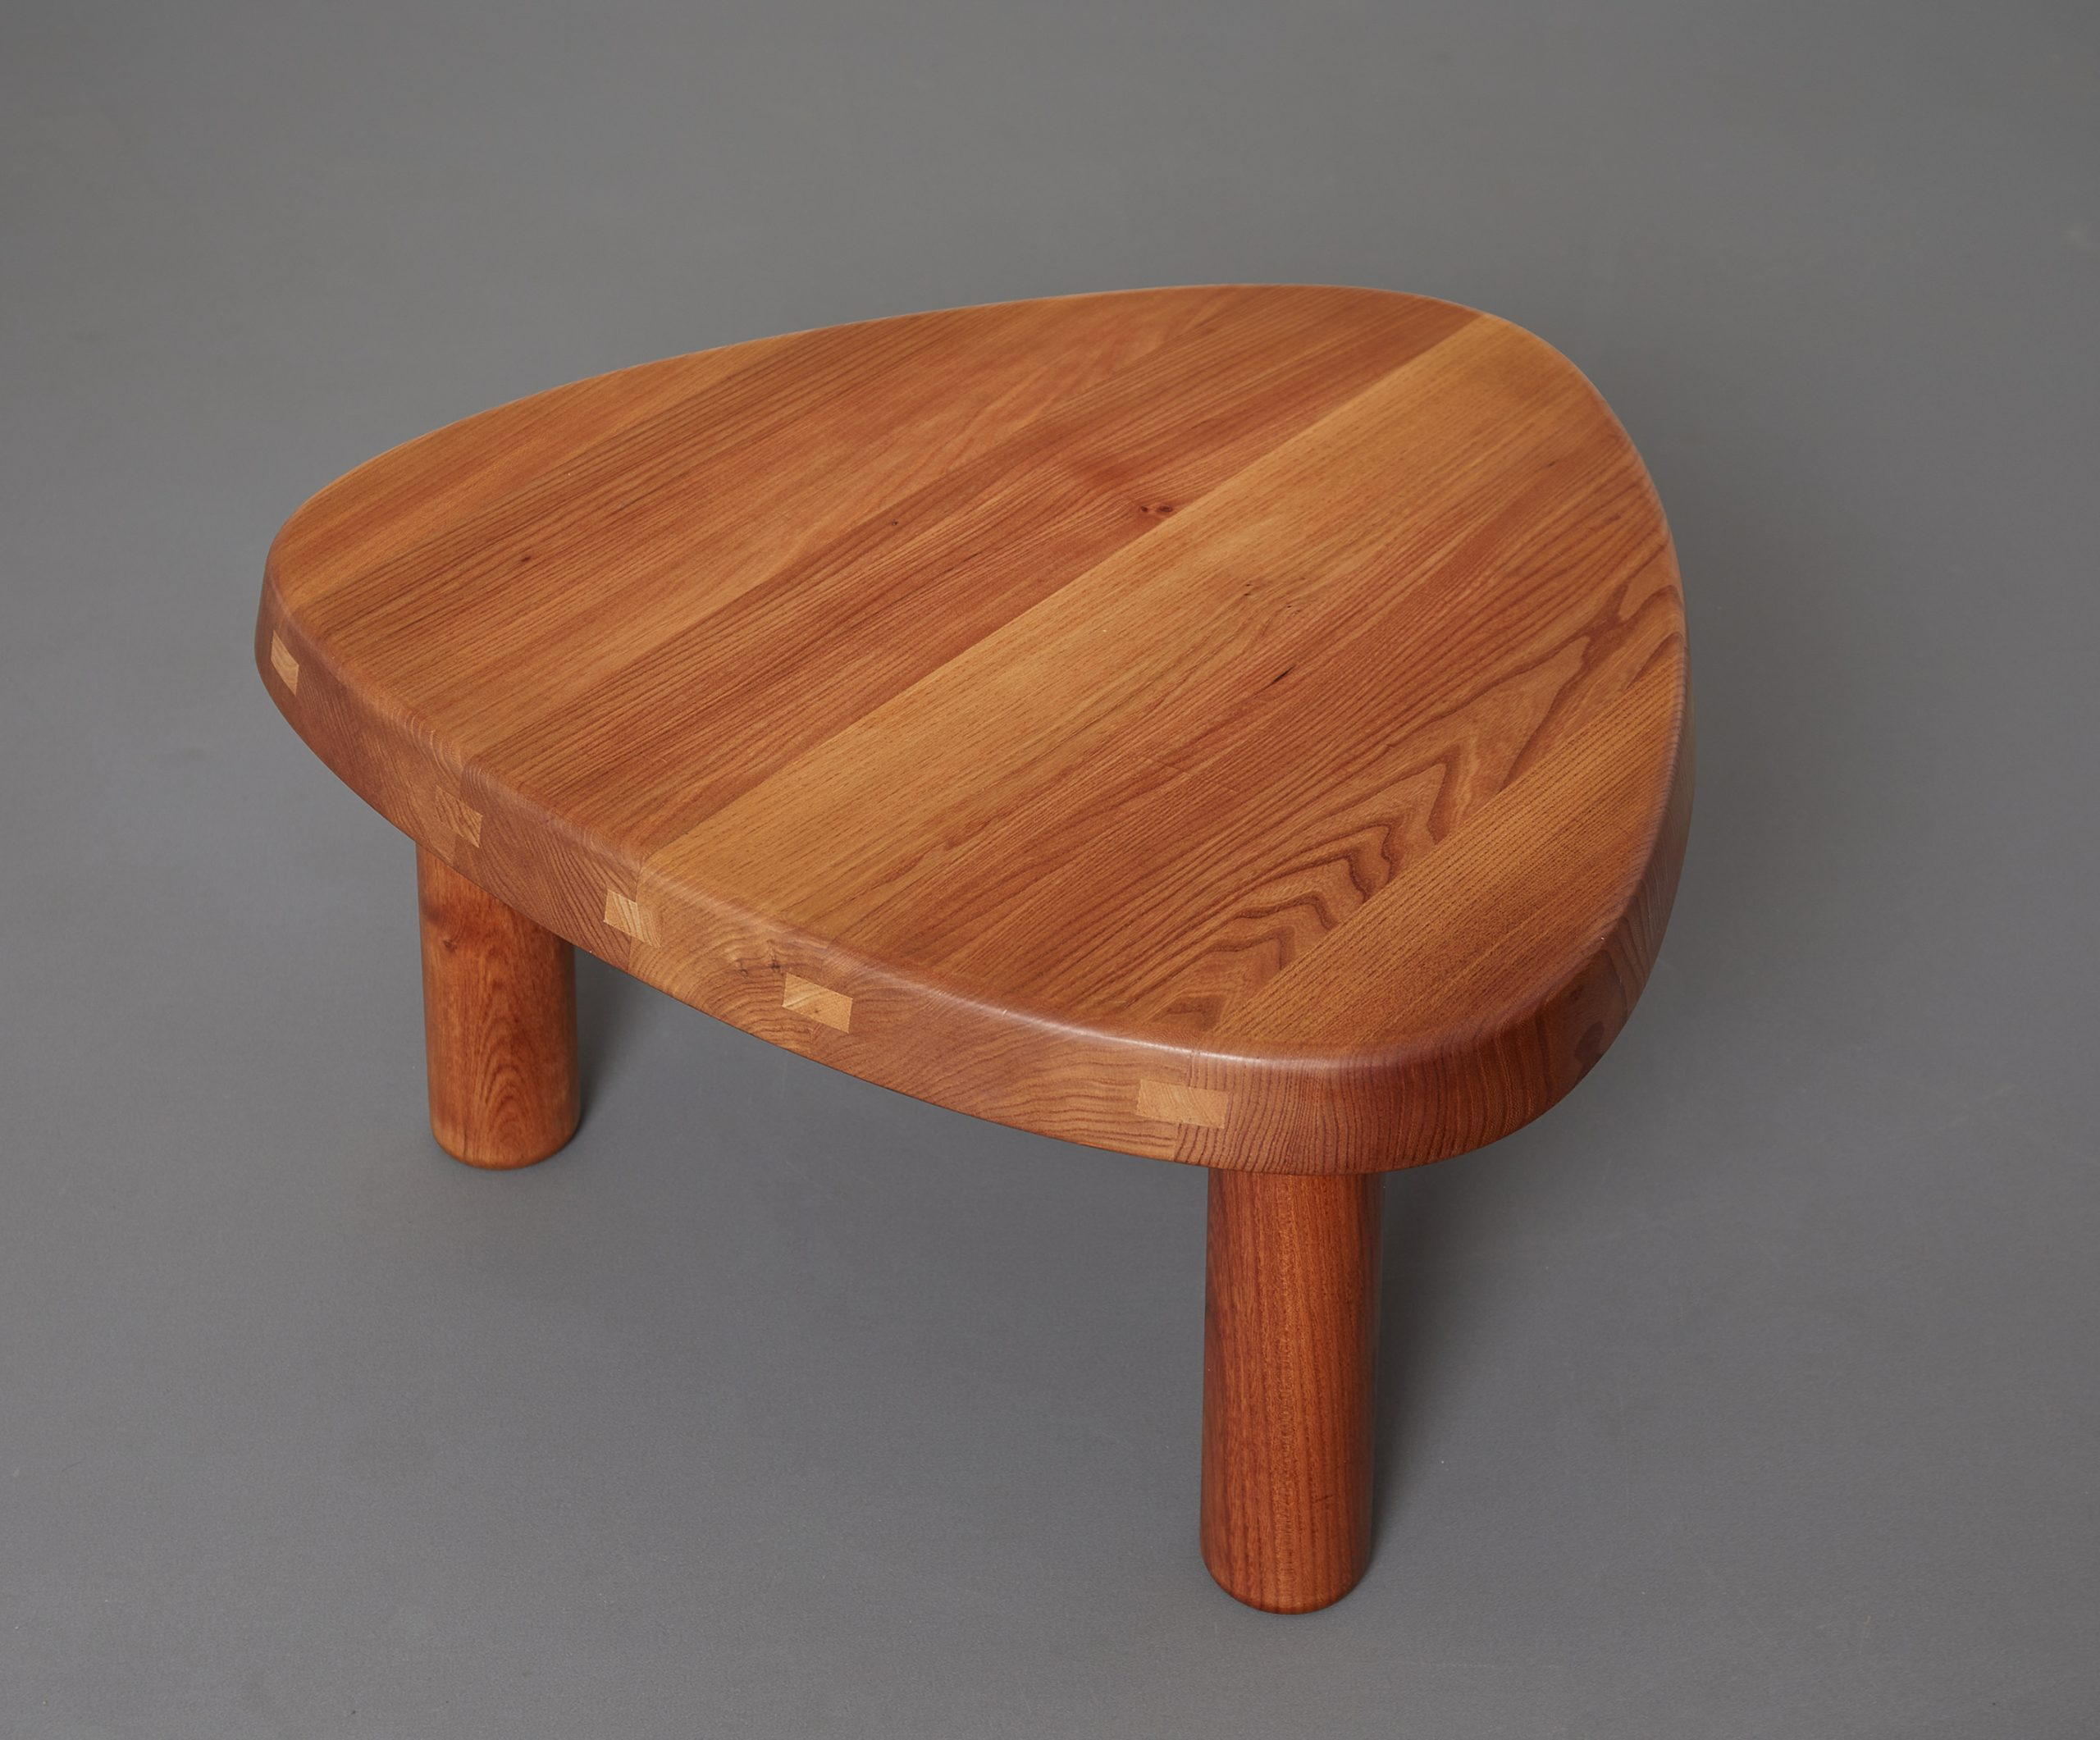 t23-table-by-pierre-chapo-image-07